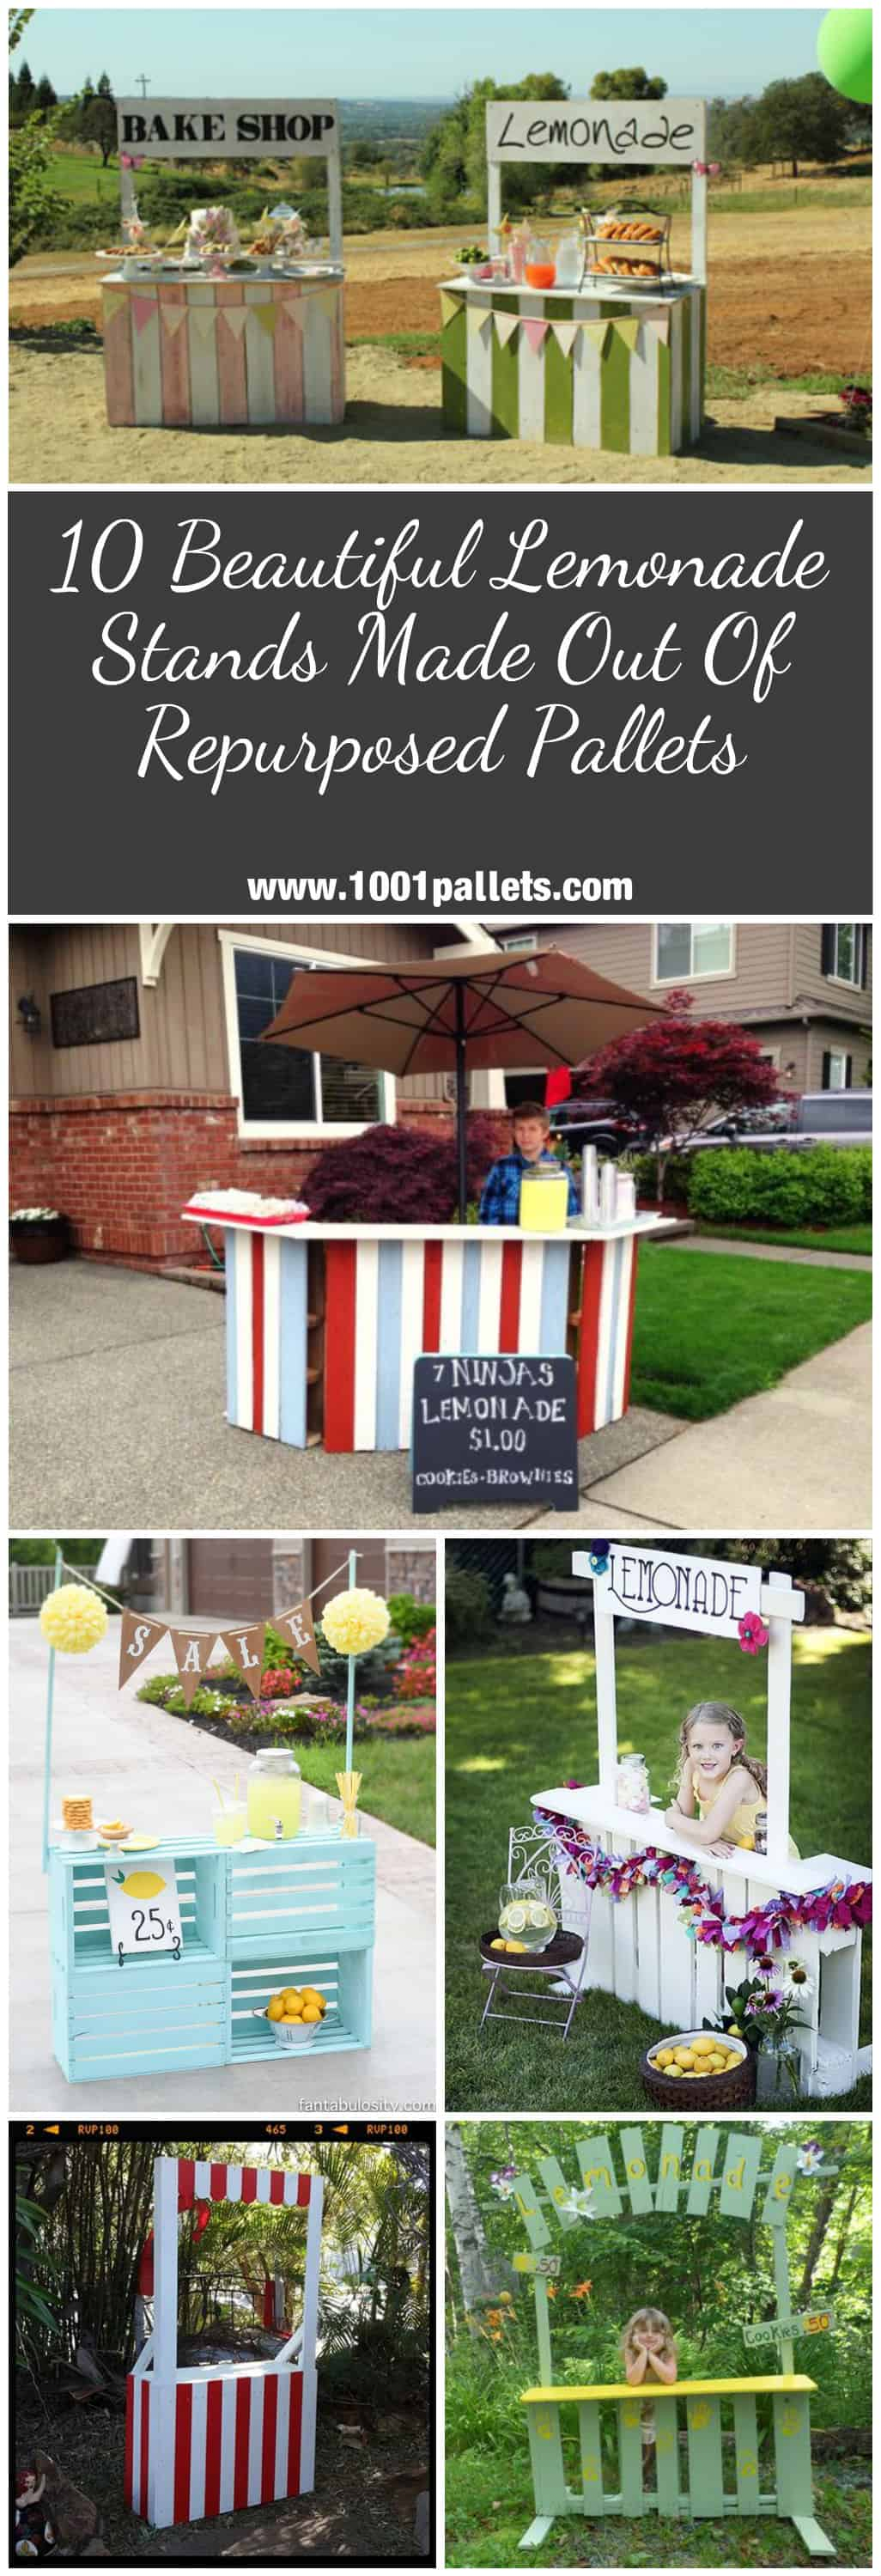 10 Lemonade Stands Made Out Of Repurposed Pallets Pallet